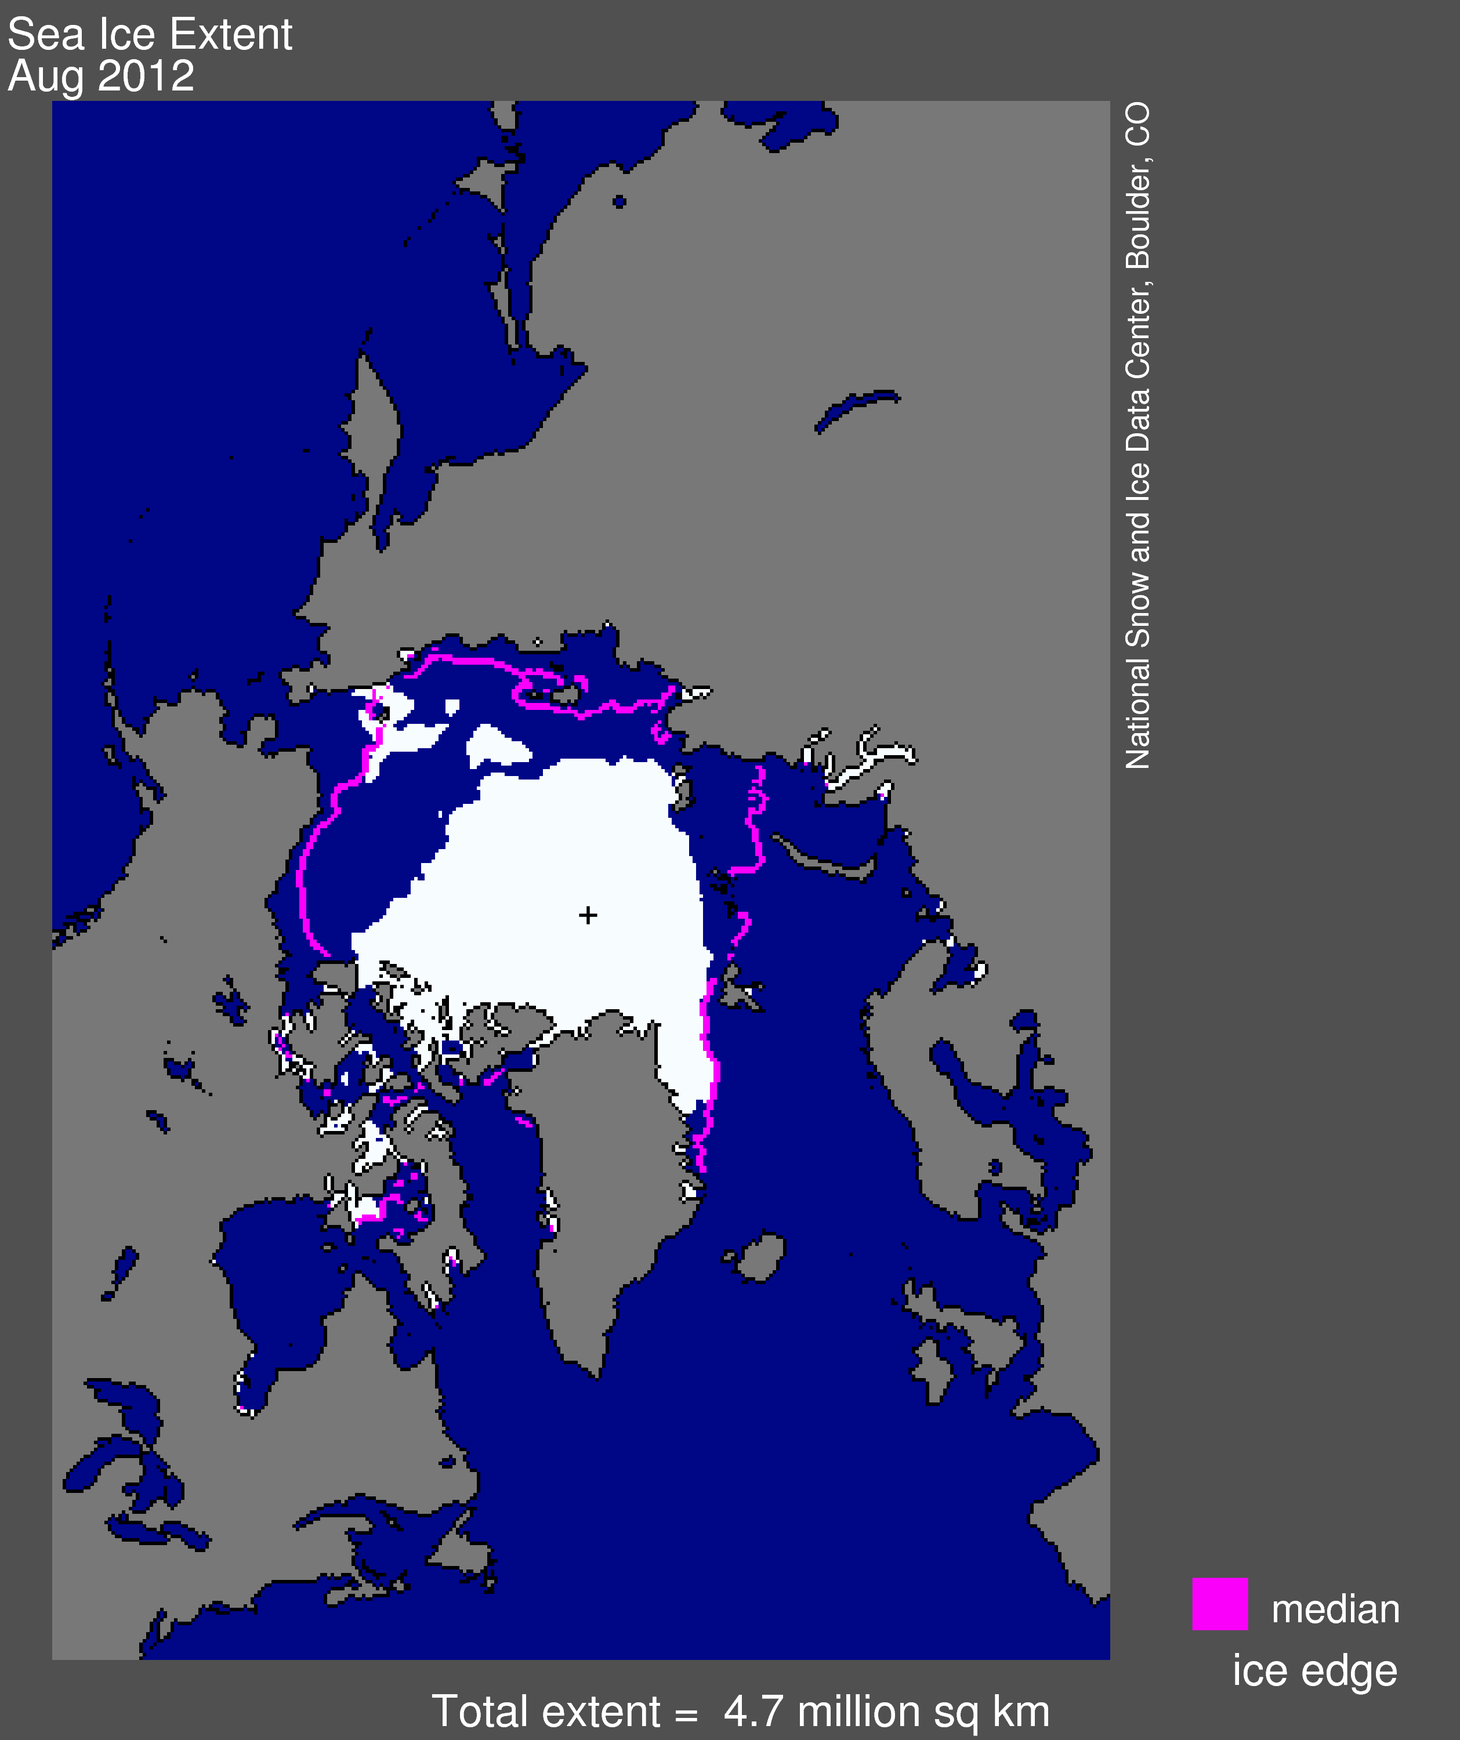 Arctic sea ice extent Sept 2012